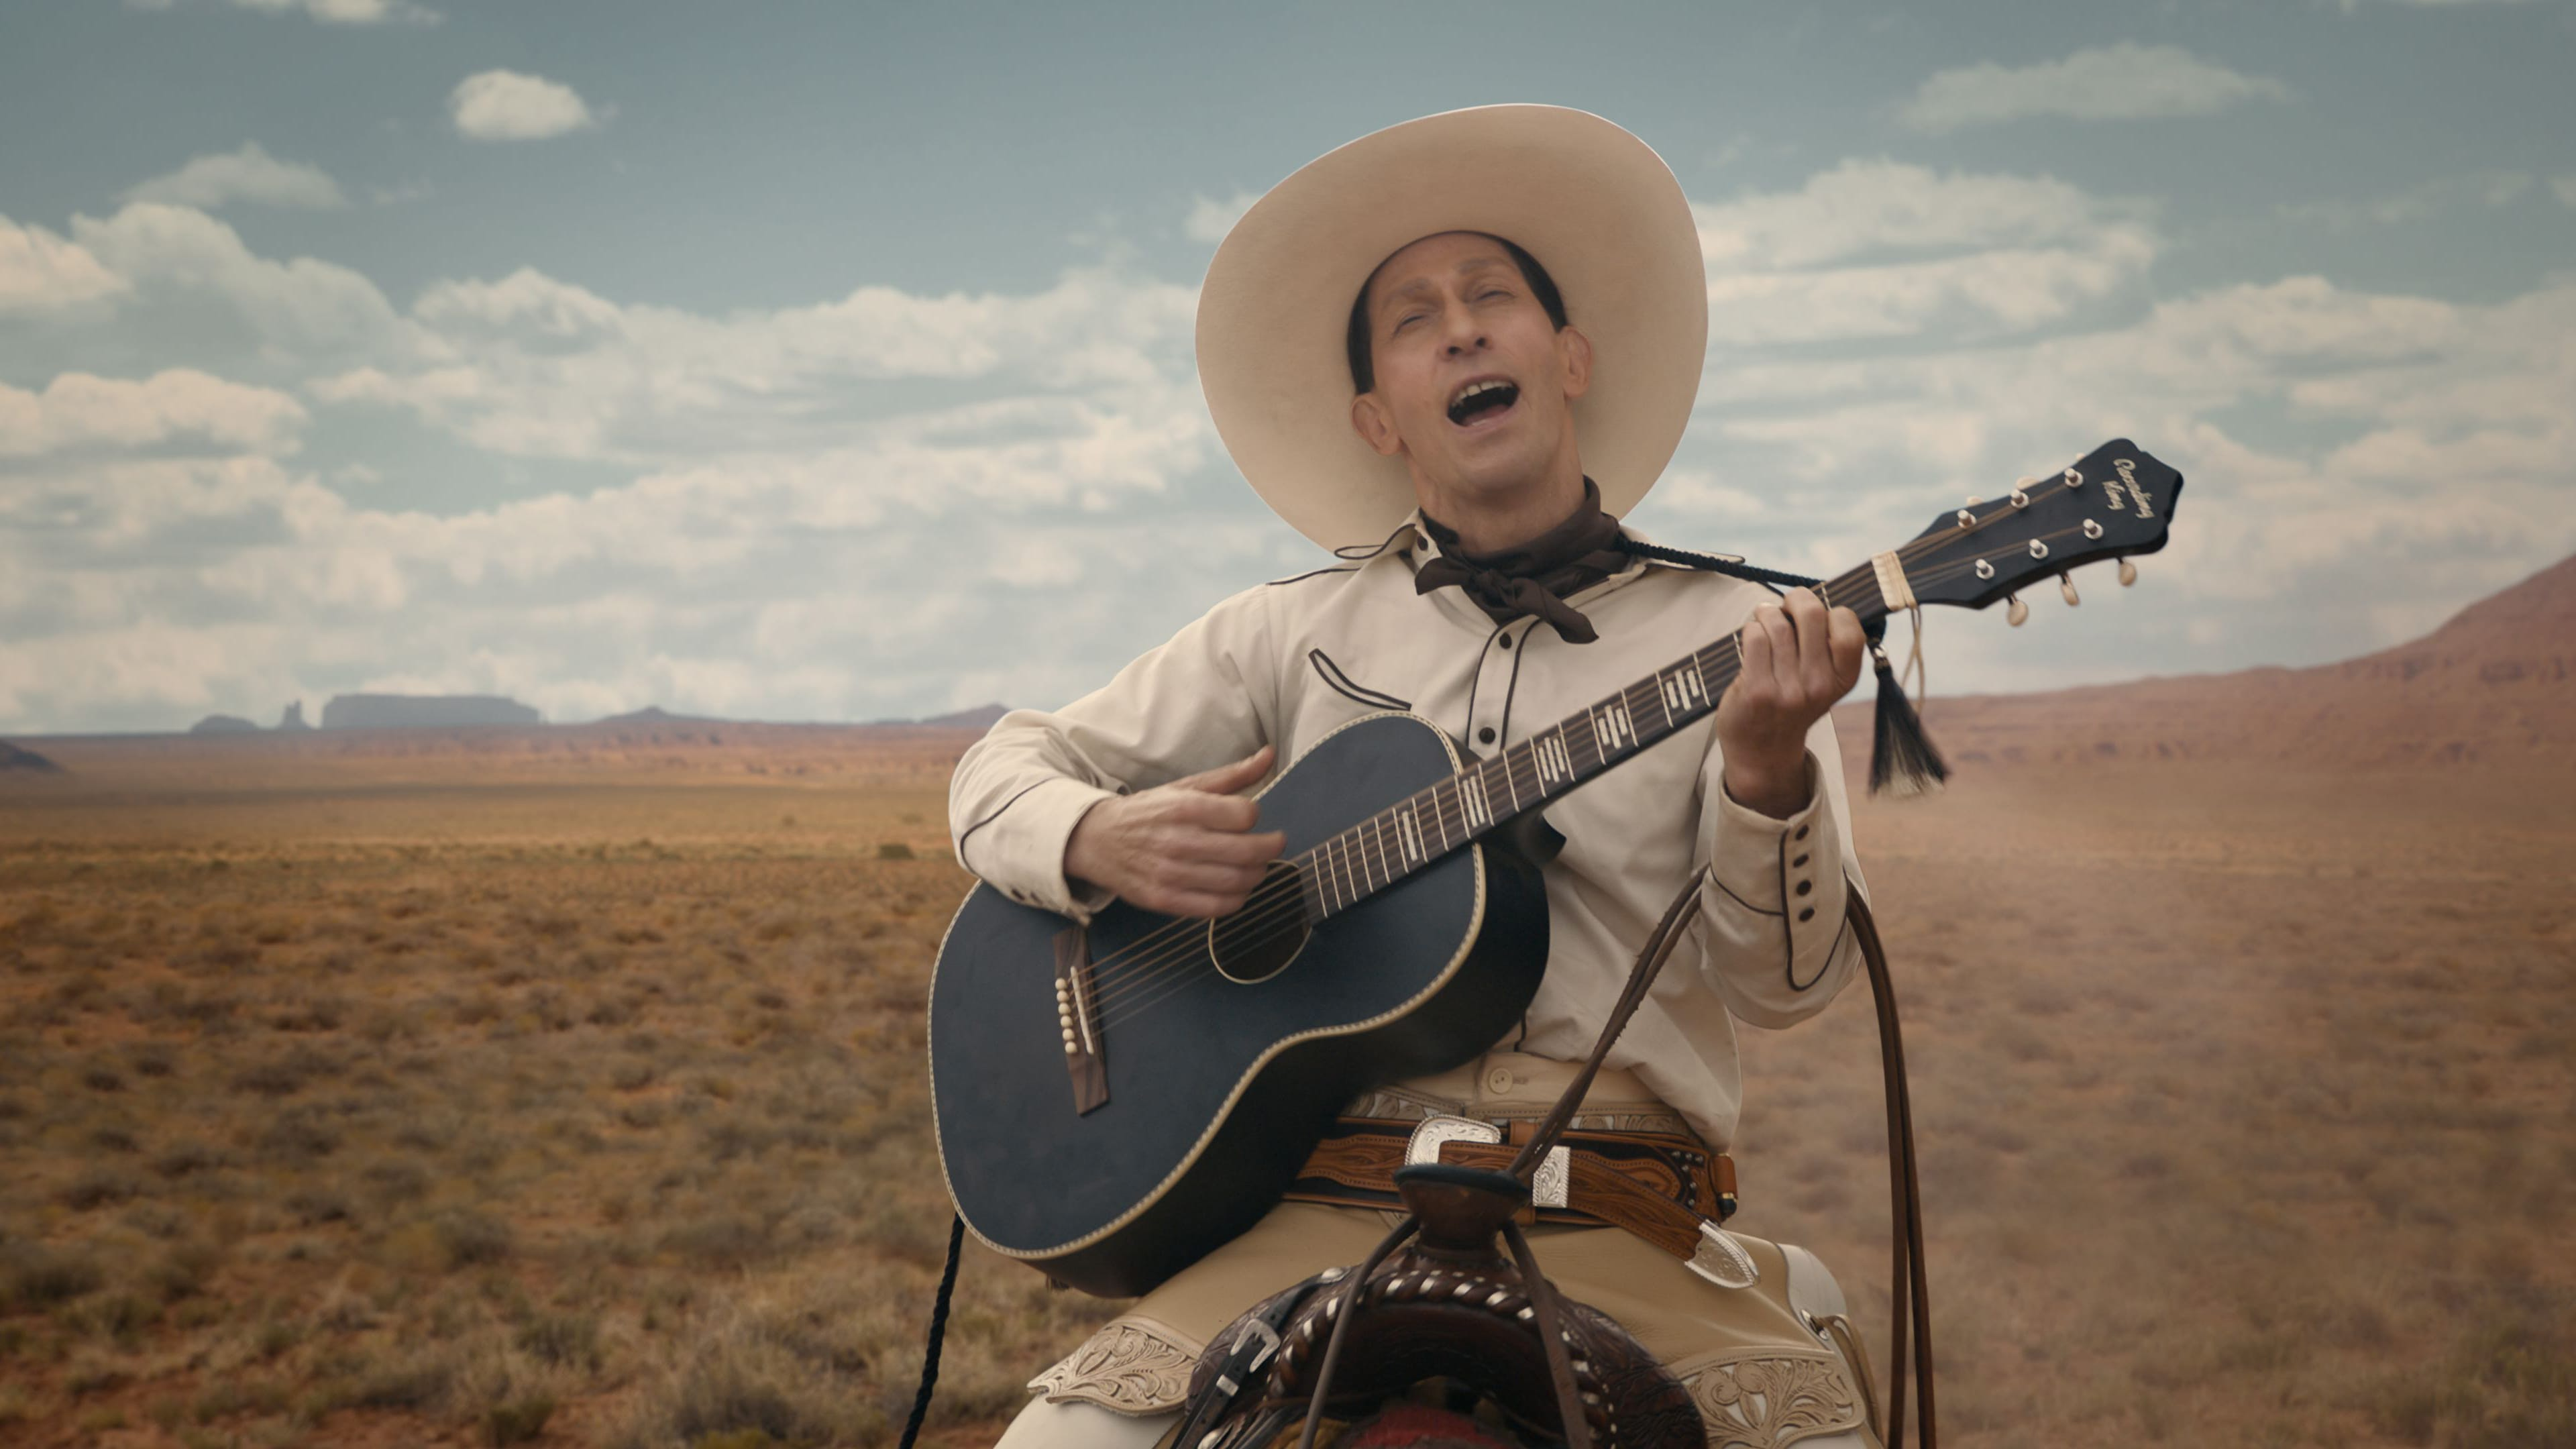 The Ballad of Buster Scruggs Soundtrack